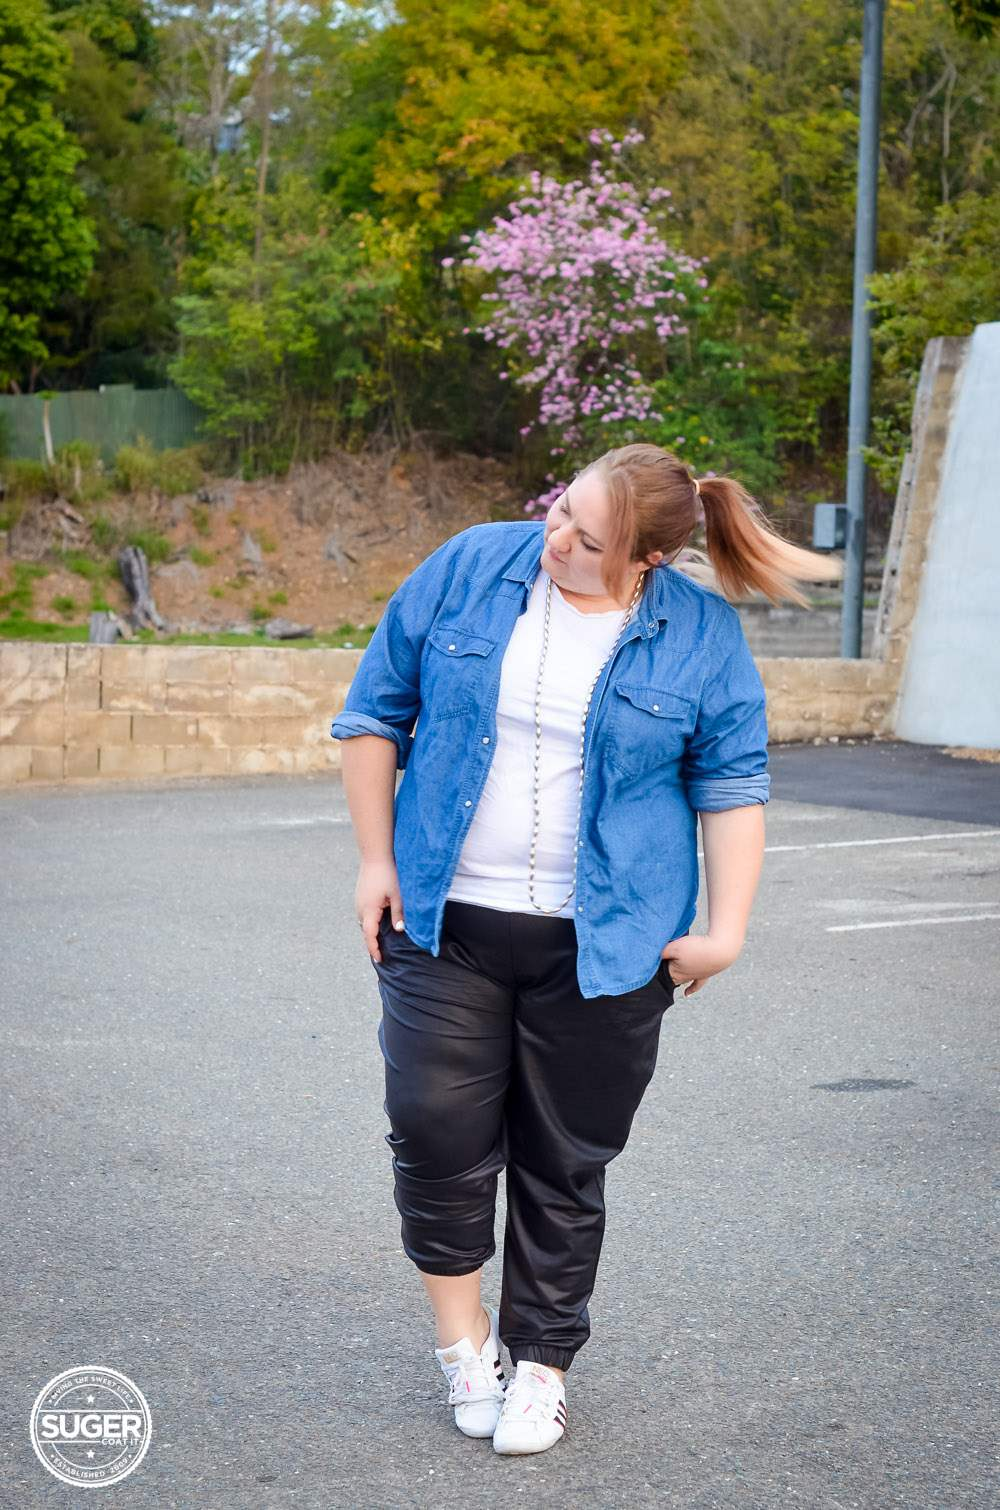 suger coat it plus size fashion blog bloopers post-2